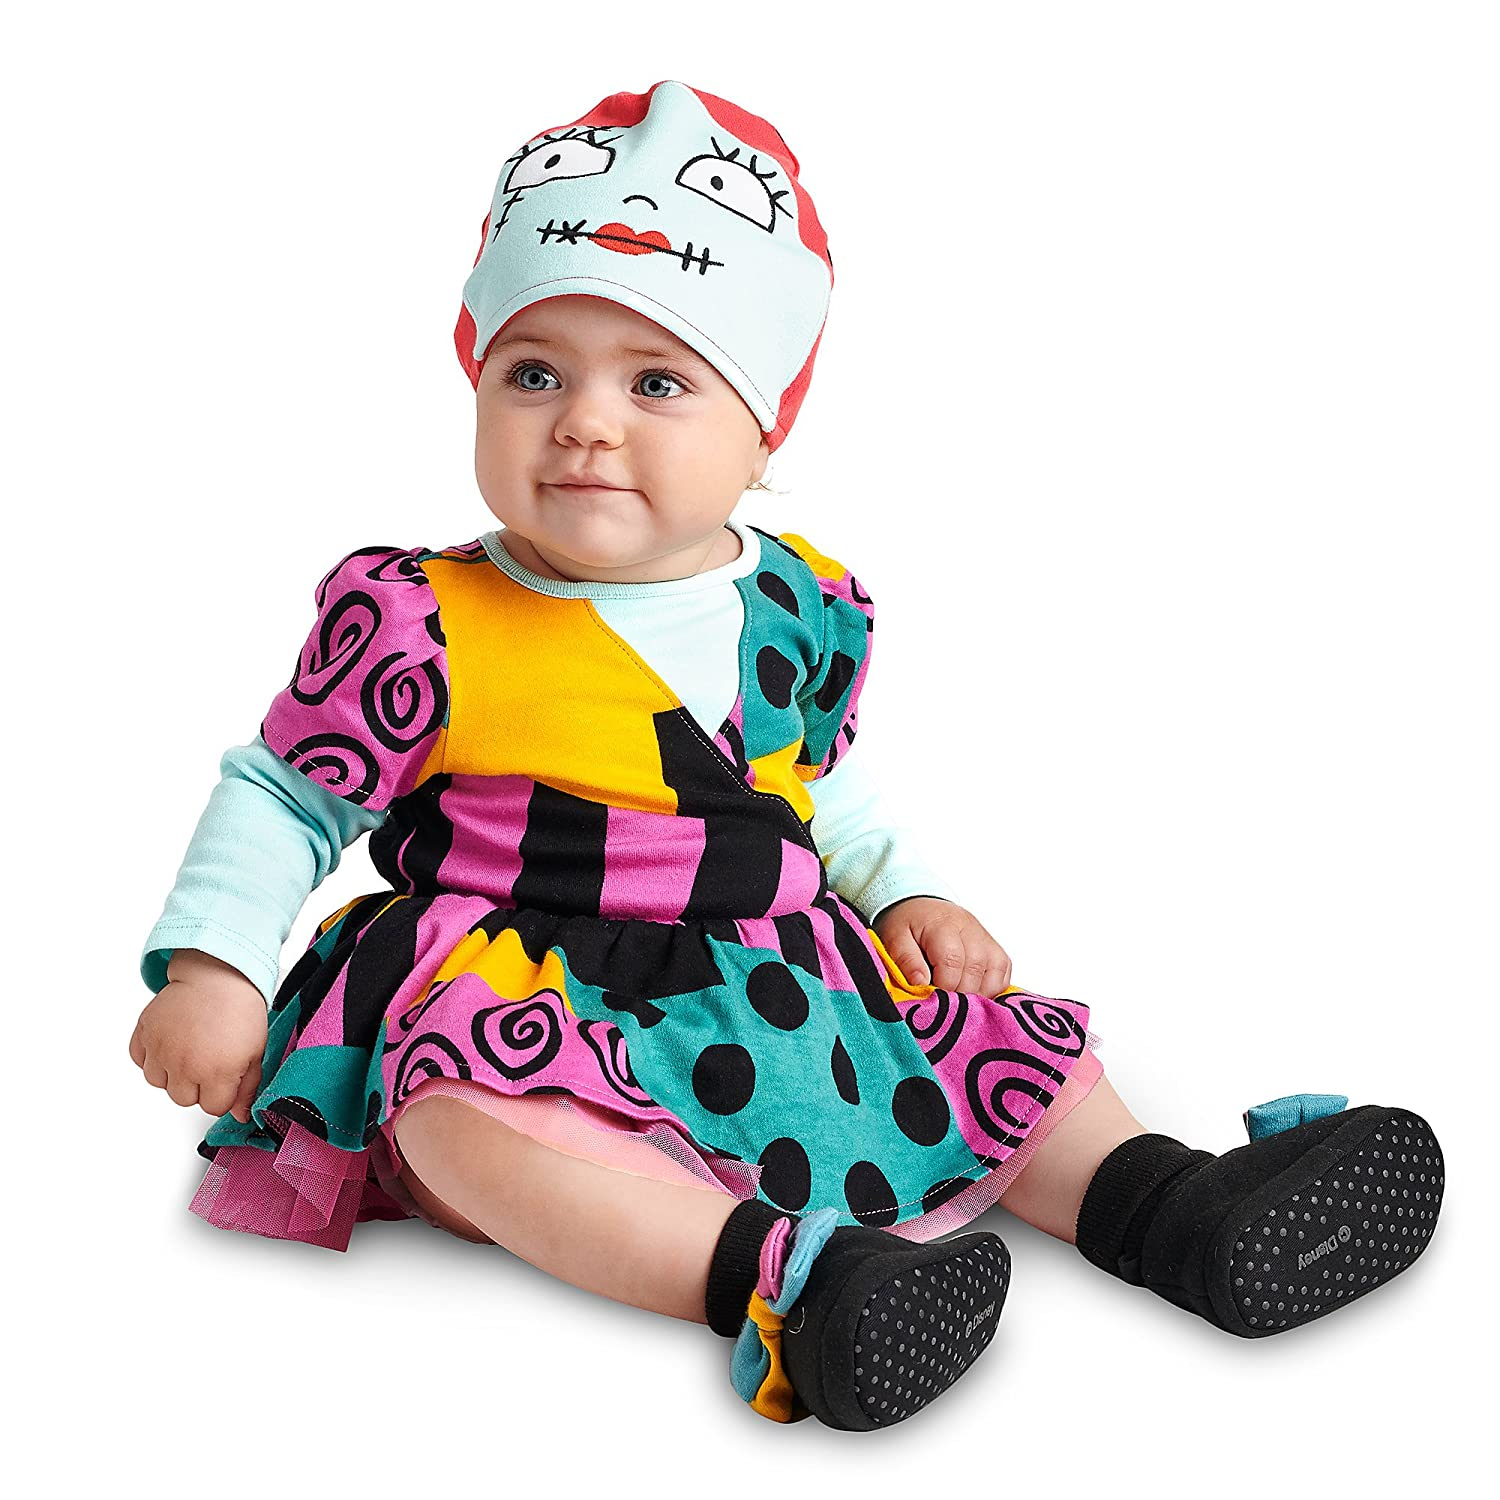 Disney Baby Sally Costume Bodysuit with Hat 12-18 Month New Nightmare Christmas